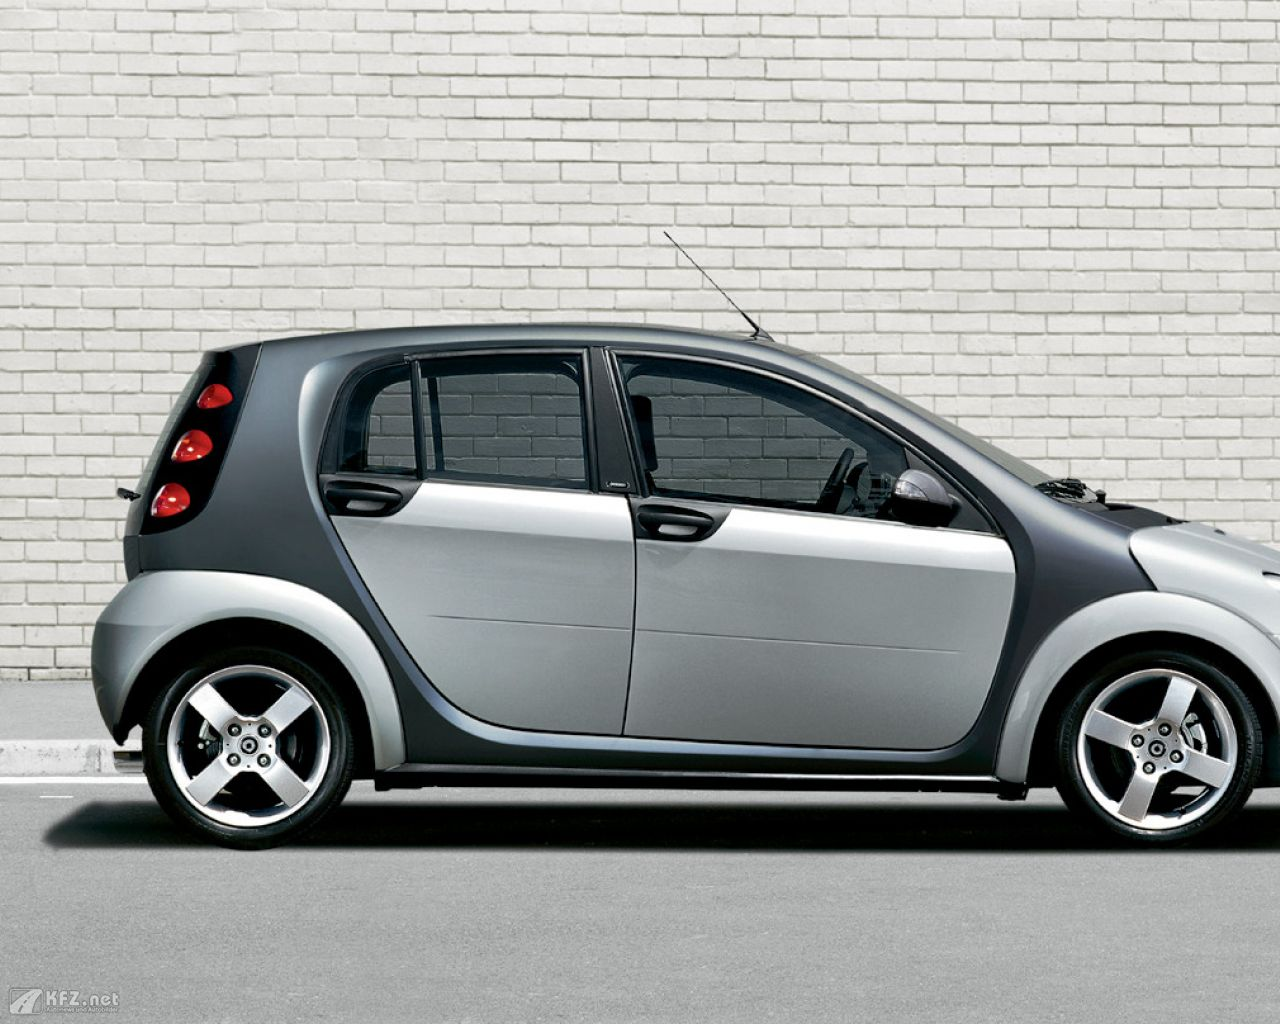 smart-forfour-1280x1024-3